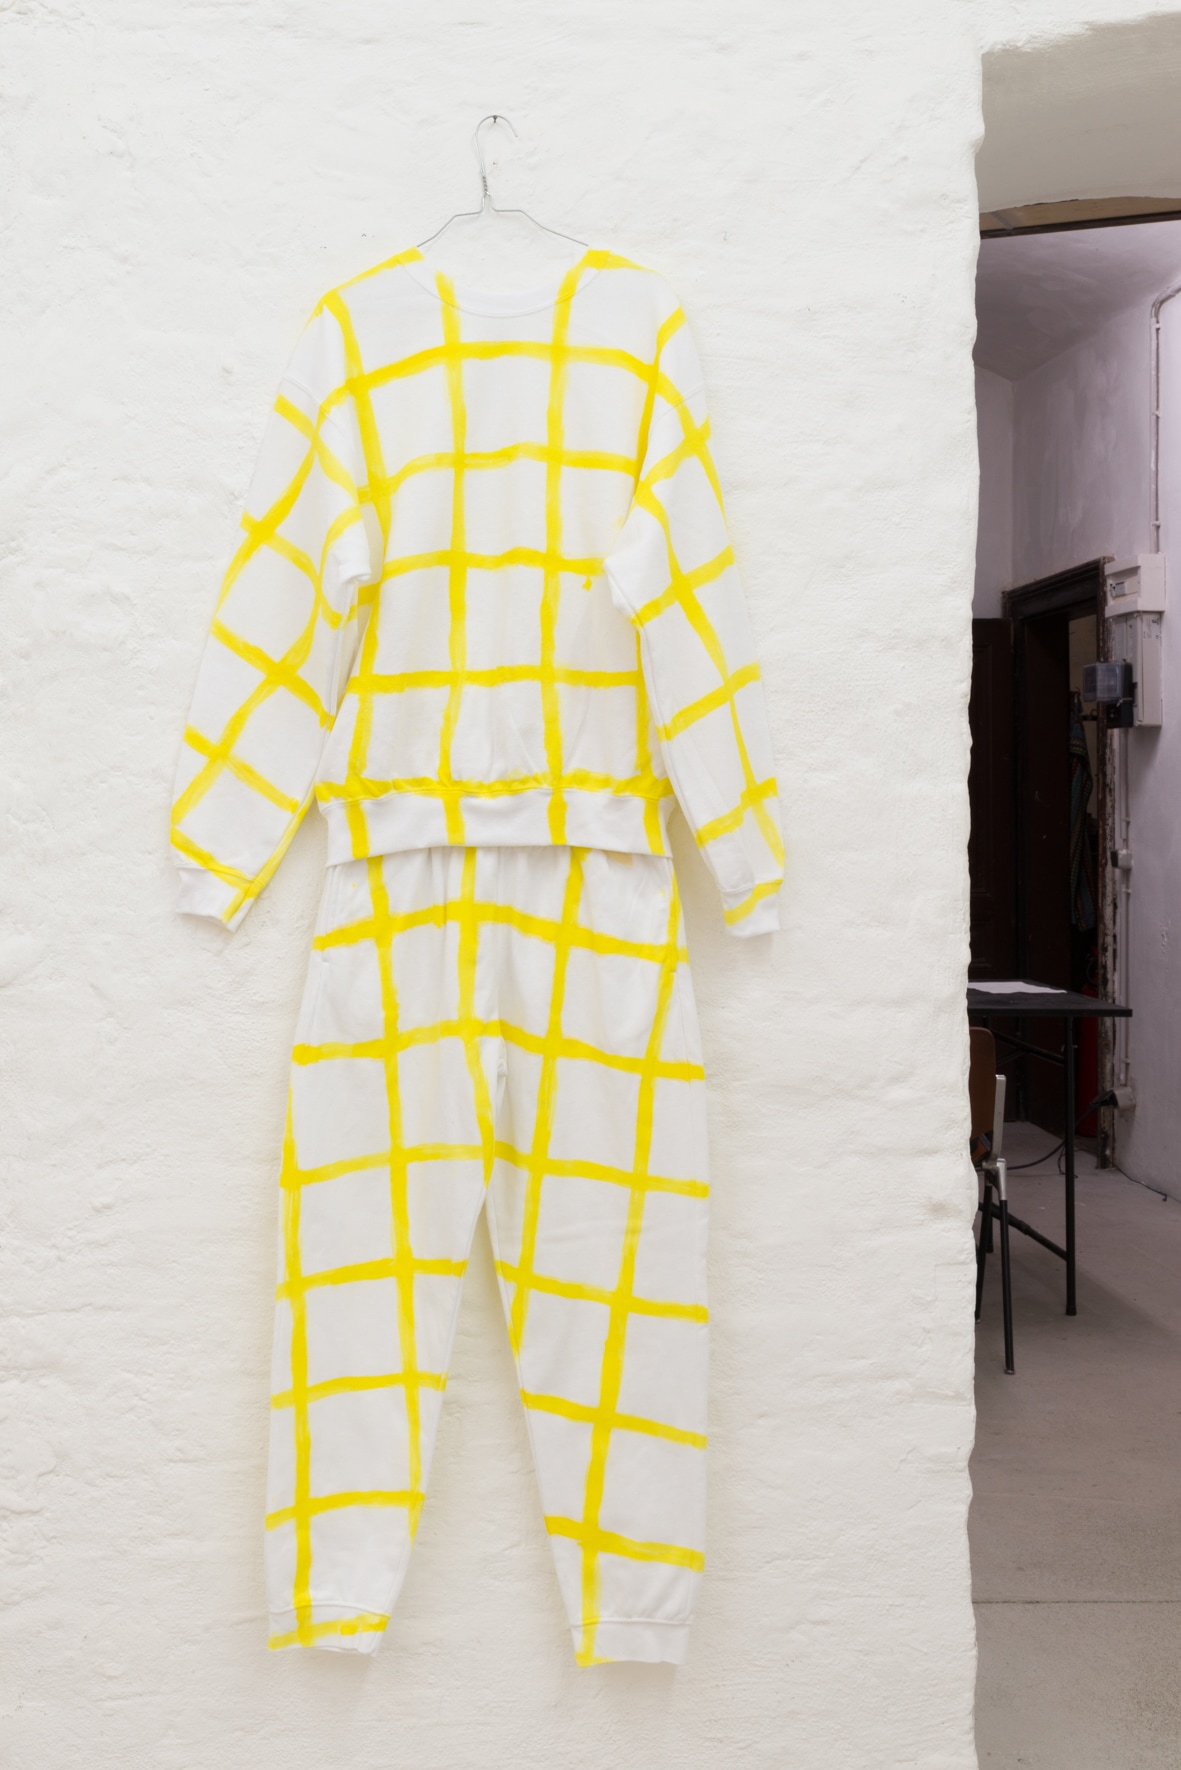 Christian Rothmaler, New Camouflage (Ich bin Alles), 2020/2021 Acrylic ink and acrylic paint on sweat suit